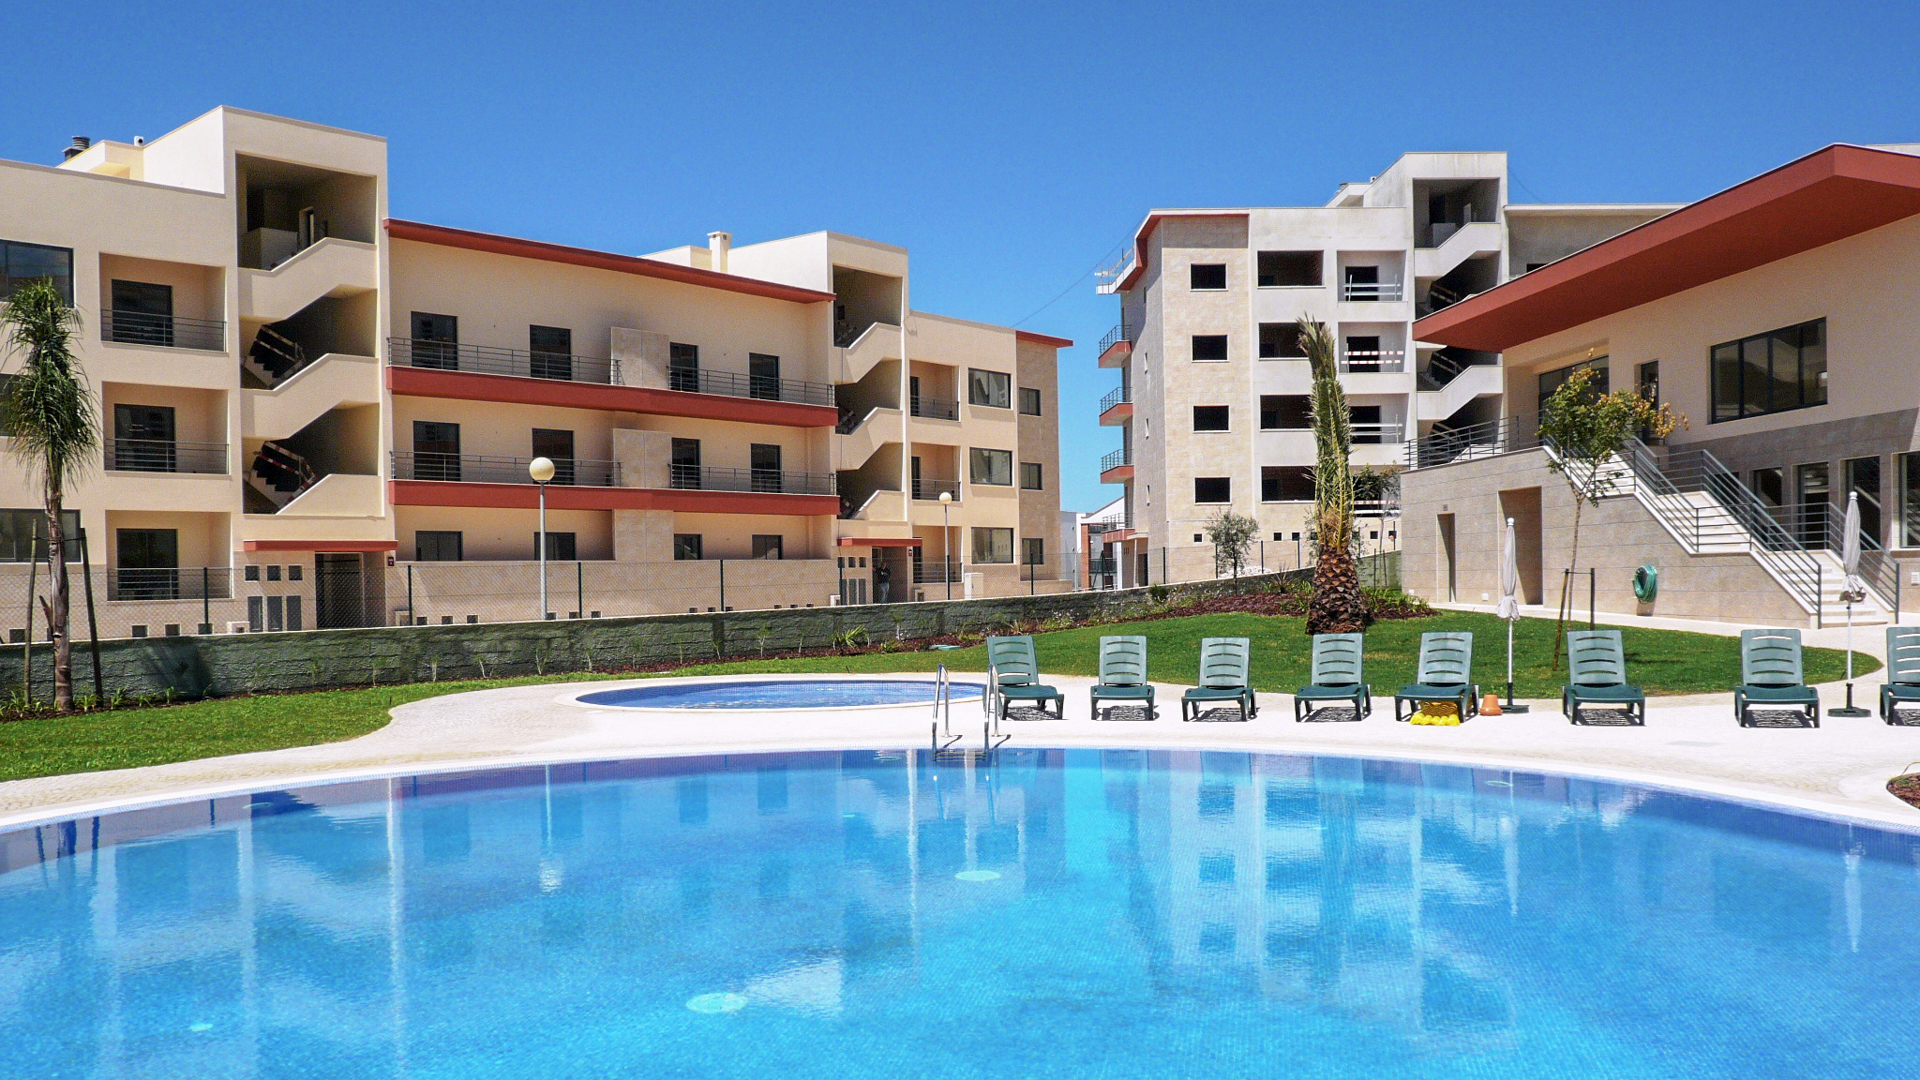 2 and 3 bedroom apartments with communal pool near Lagos Marina, West Algarve  | S415 A selection of high quality 2 and 3 bedroom apartments with communal pool near Lagos Marina.